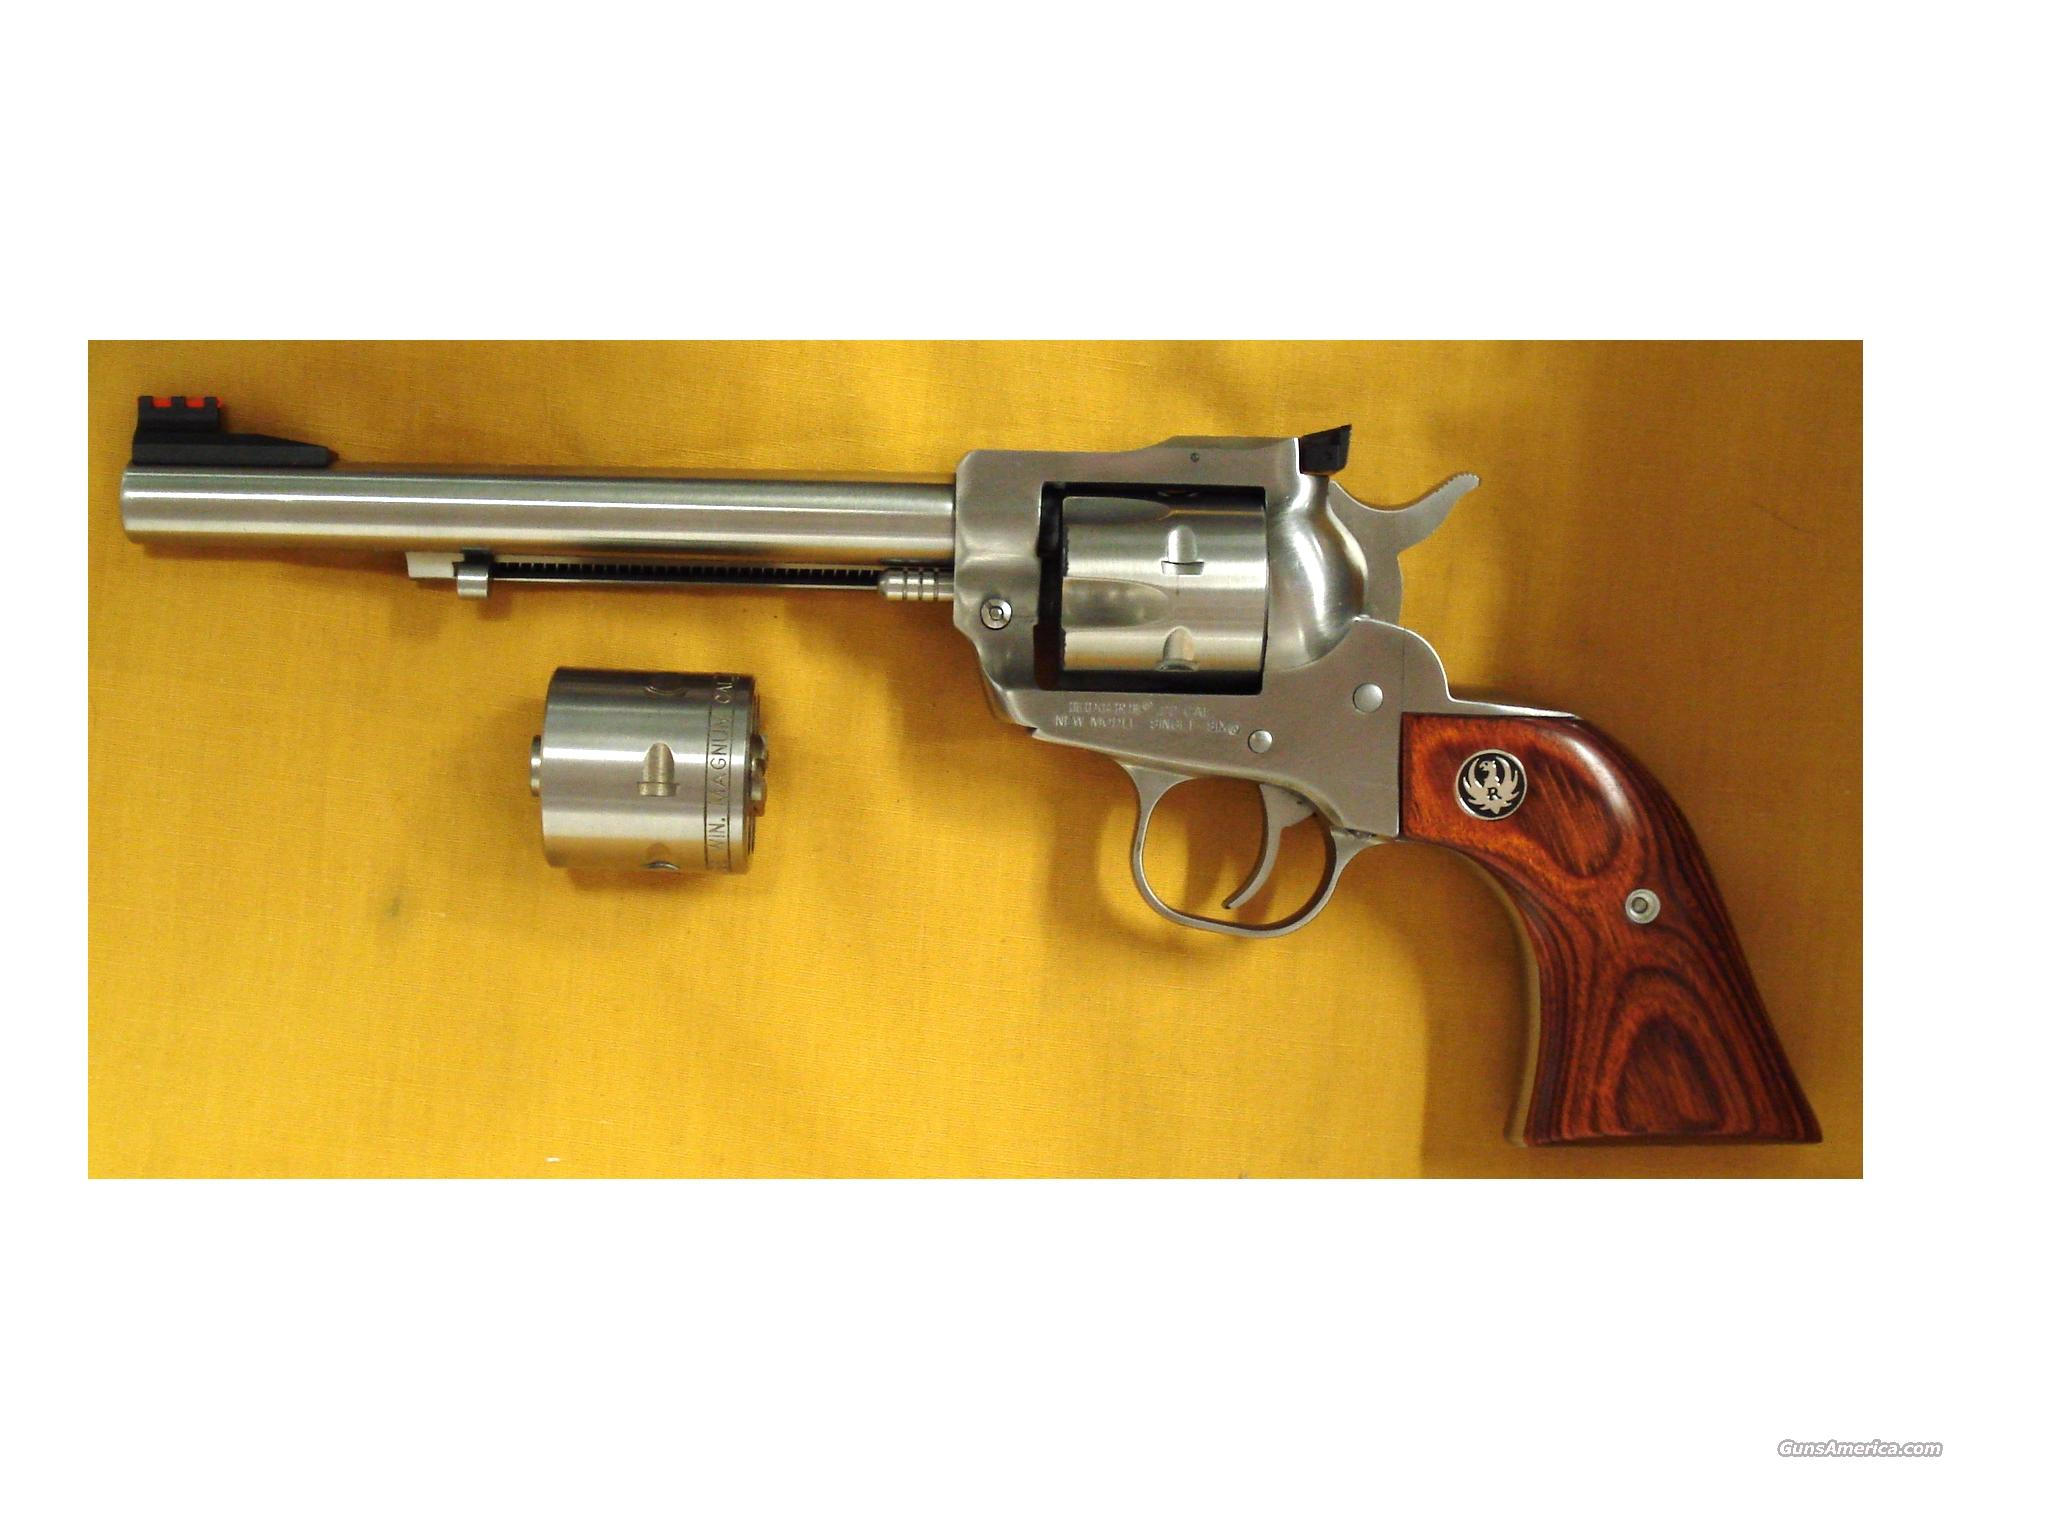 "RUGER SINGLE 6 .22MAG-.22LR 6 1/2"" BBL  Guns > Pistols > Ruger Single Action Revolvers > Single Six Type"